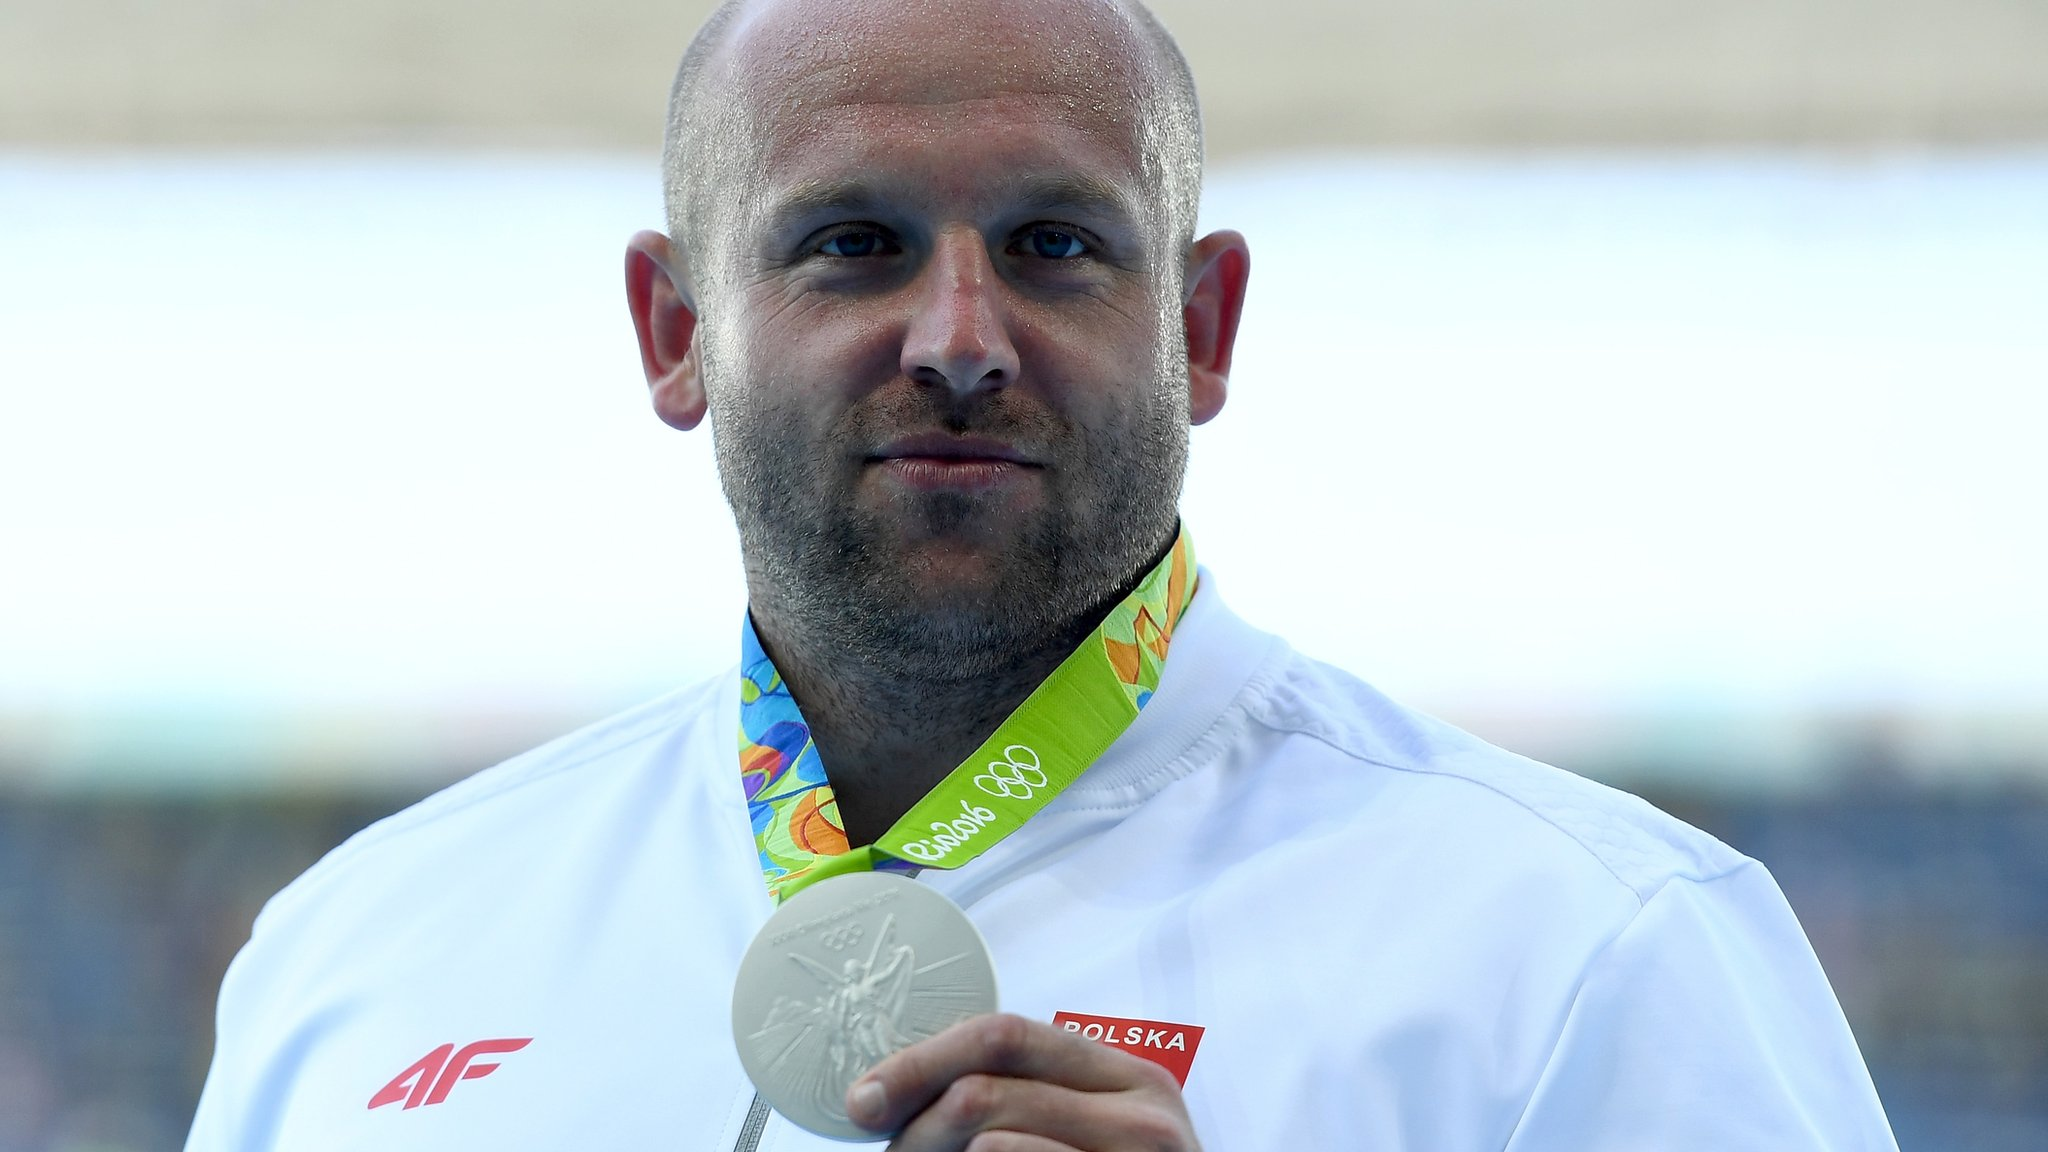 Olympian donates medal to help boy with cancer